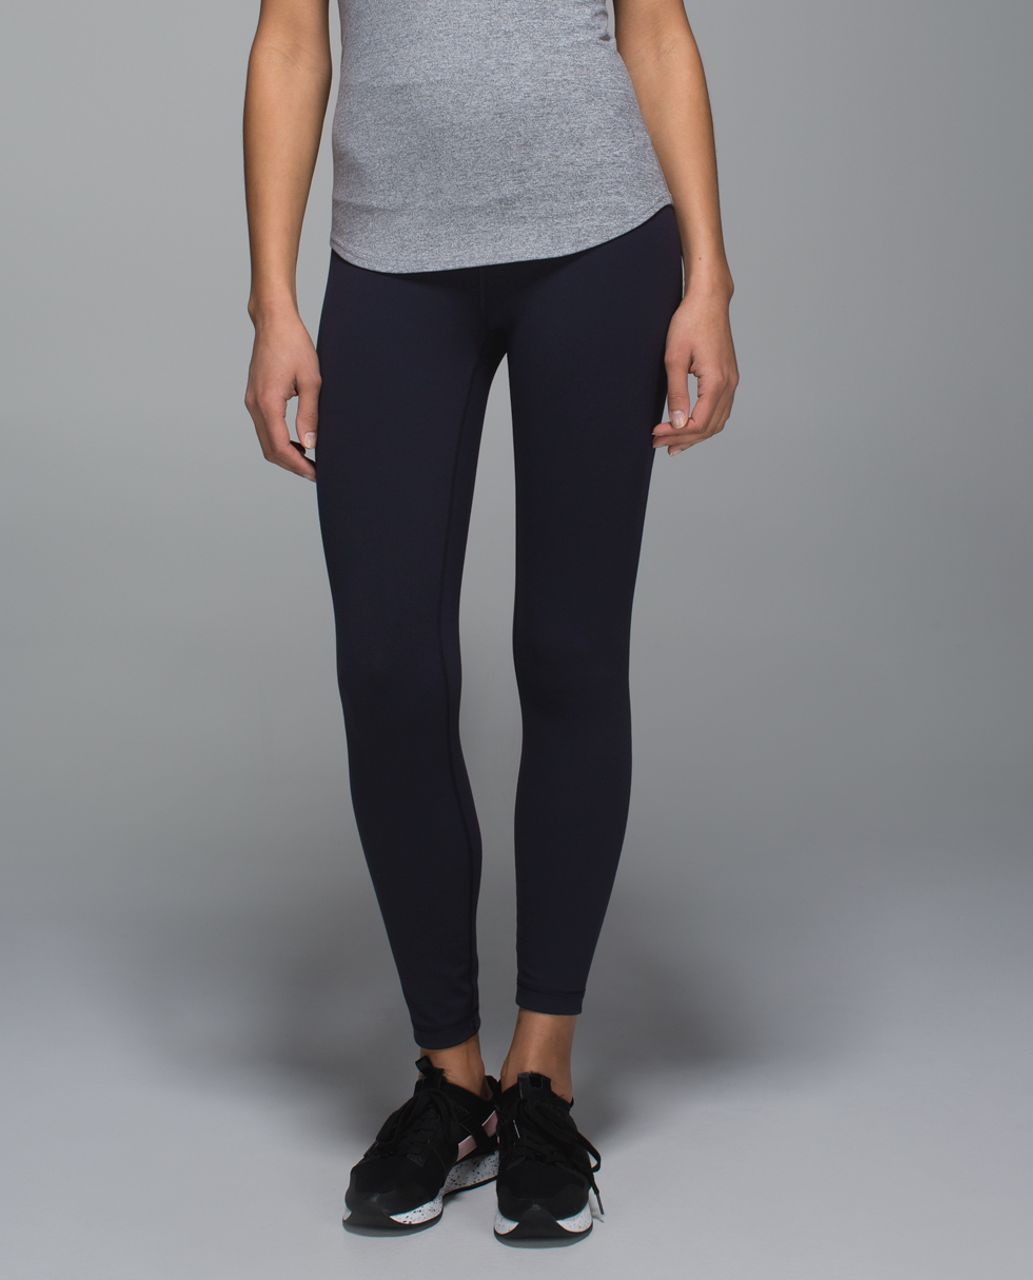 Lululemon High Times Pant *Full-On Luon - Naval Blue